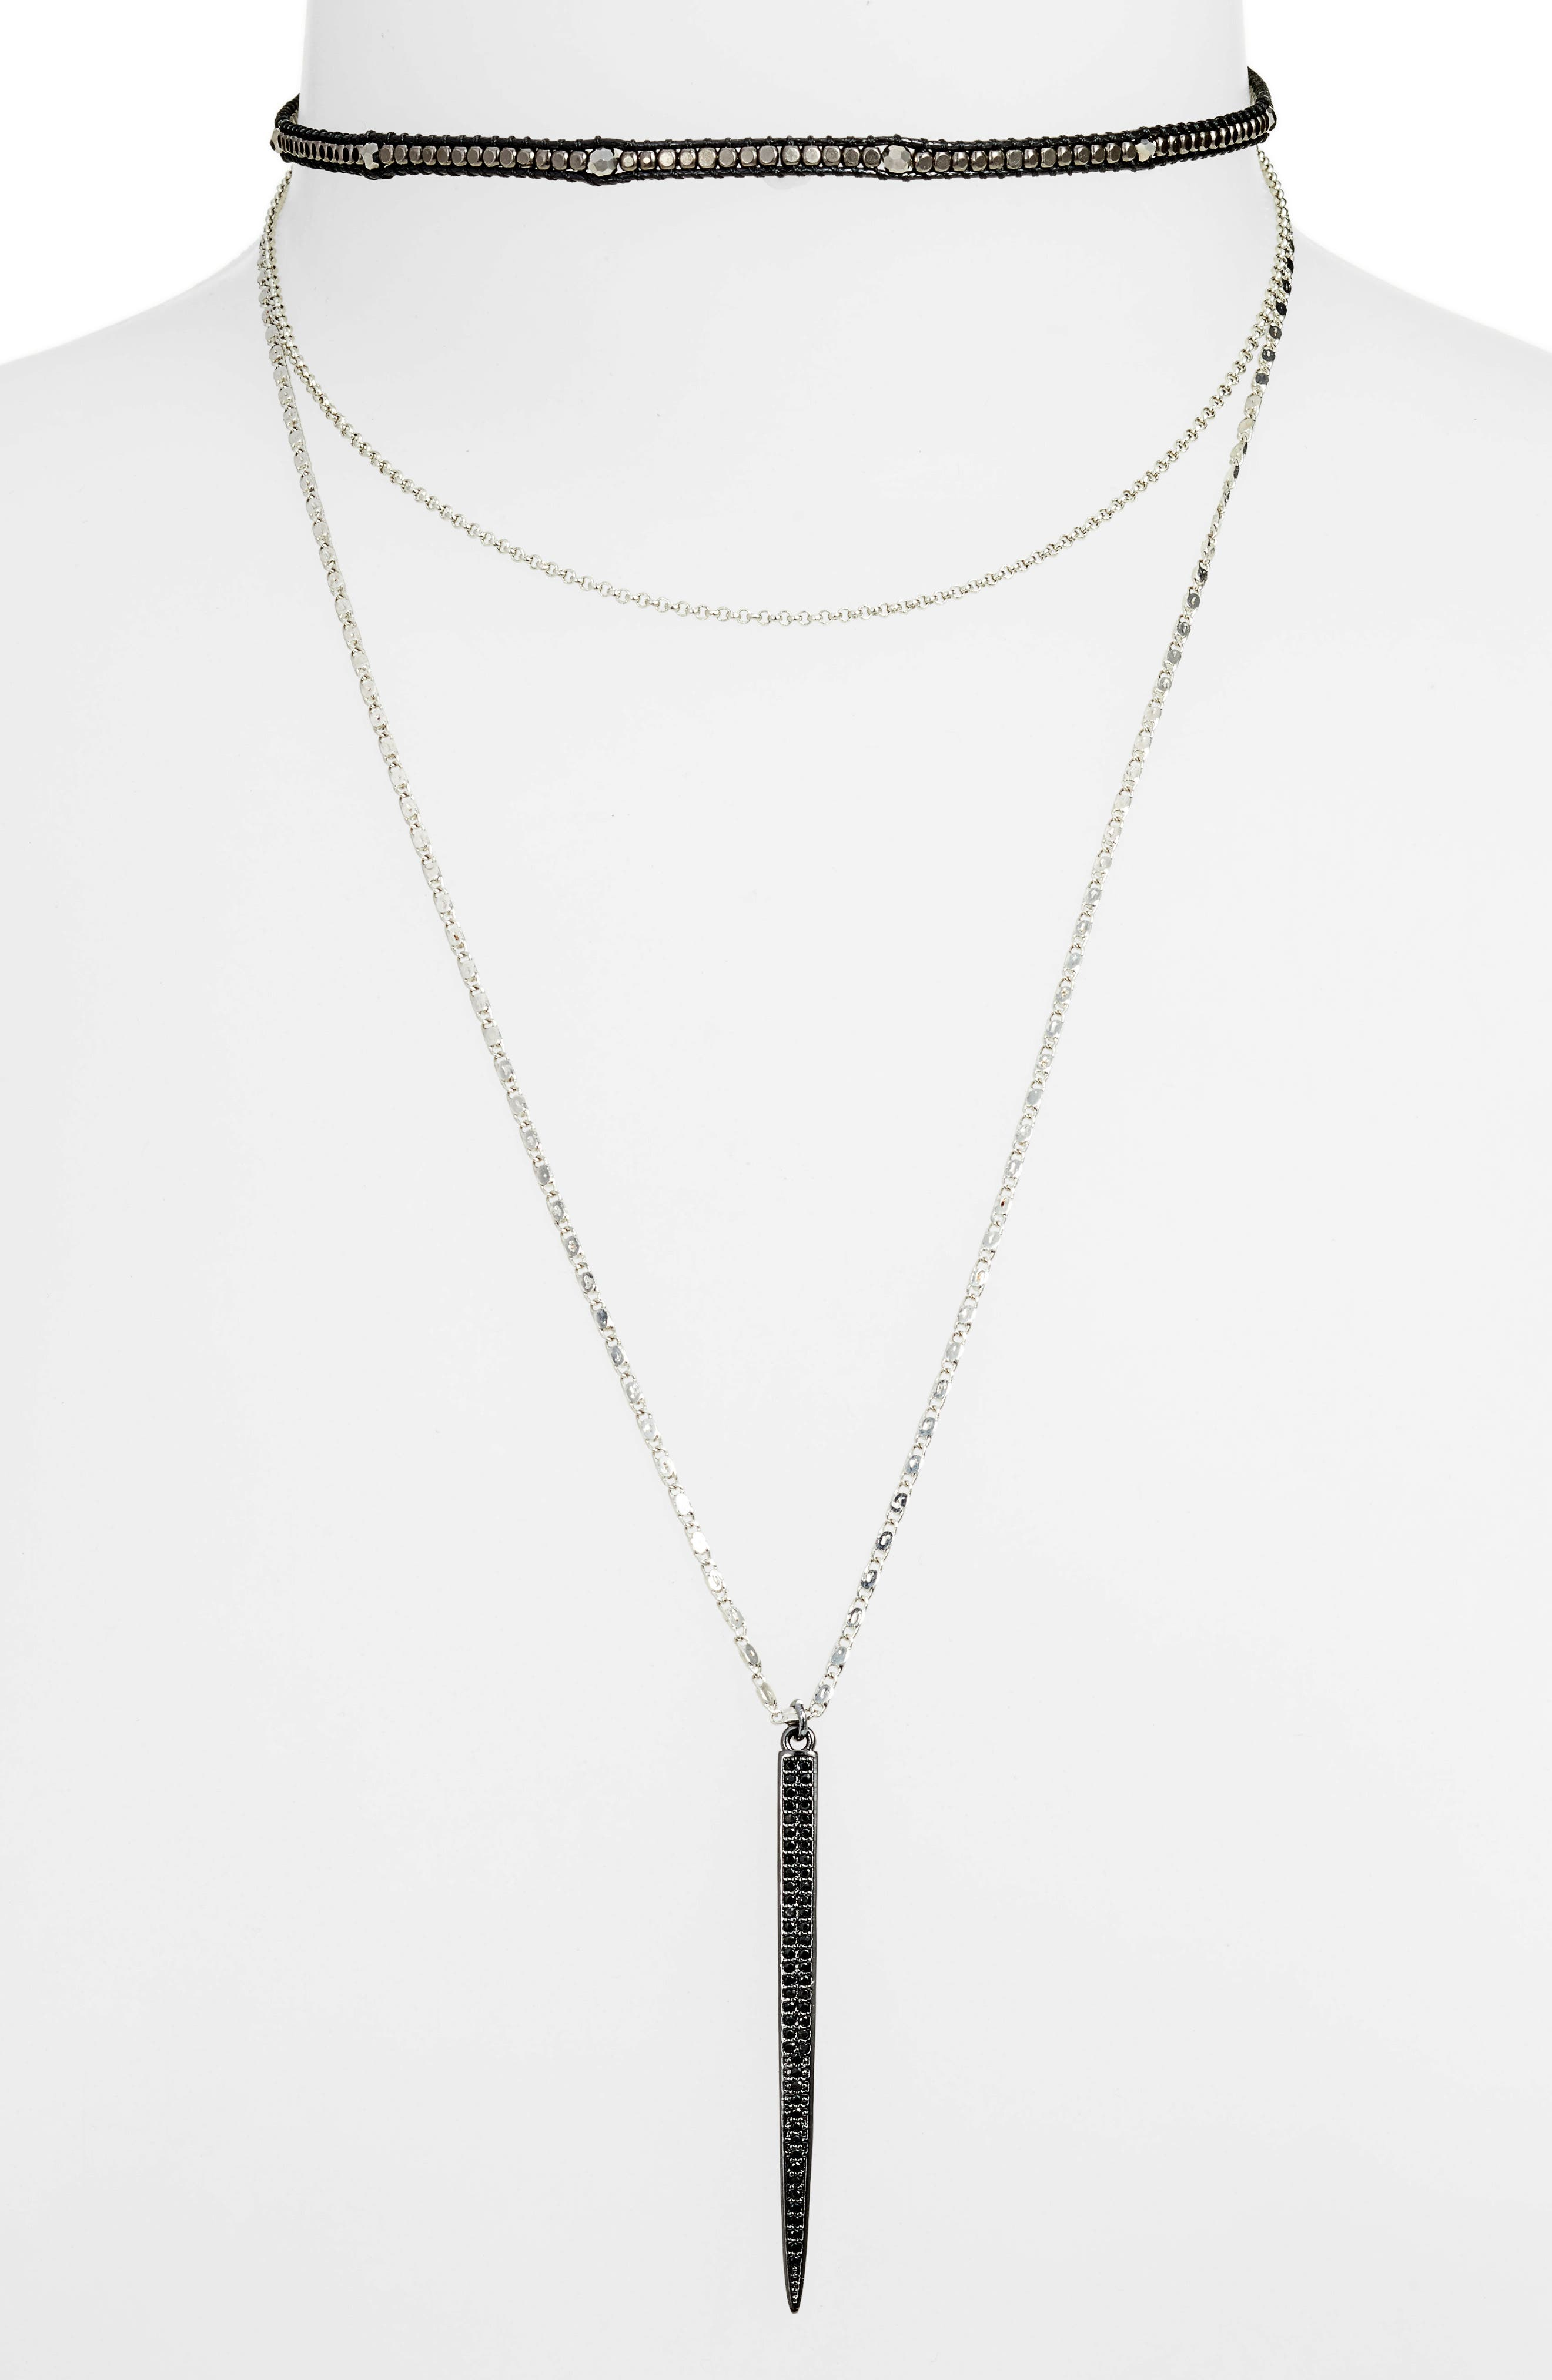 Nakamol Design Layered Choker Necklace